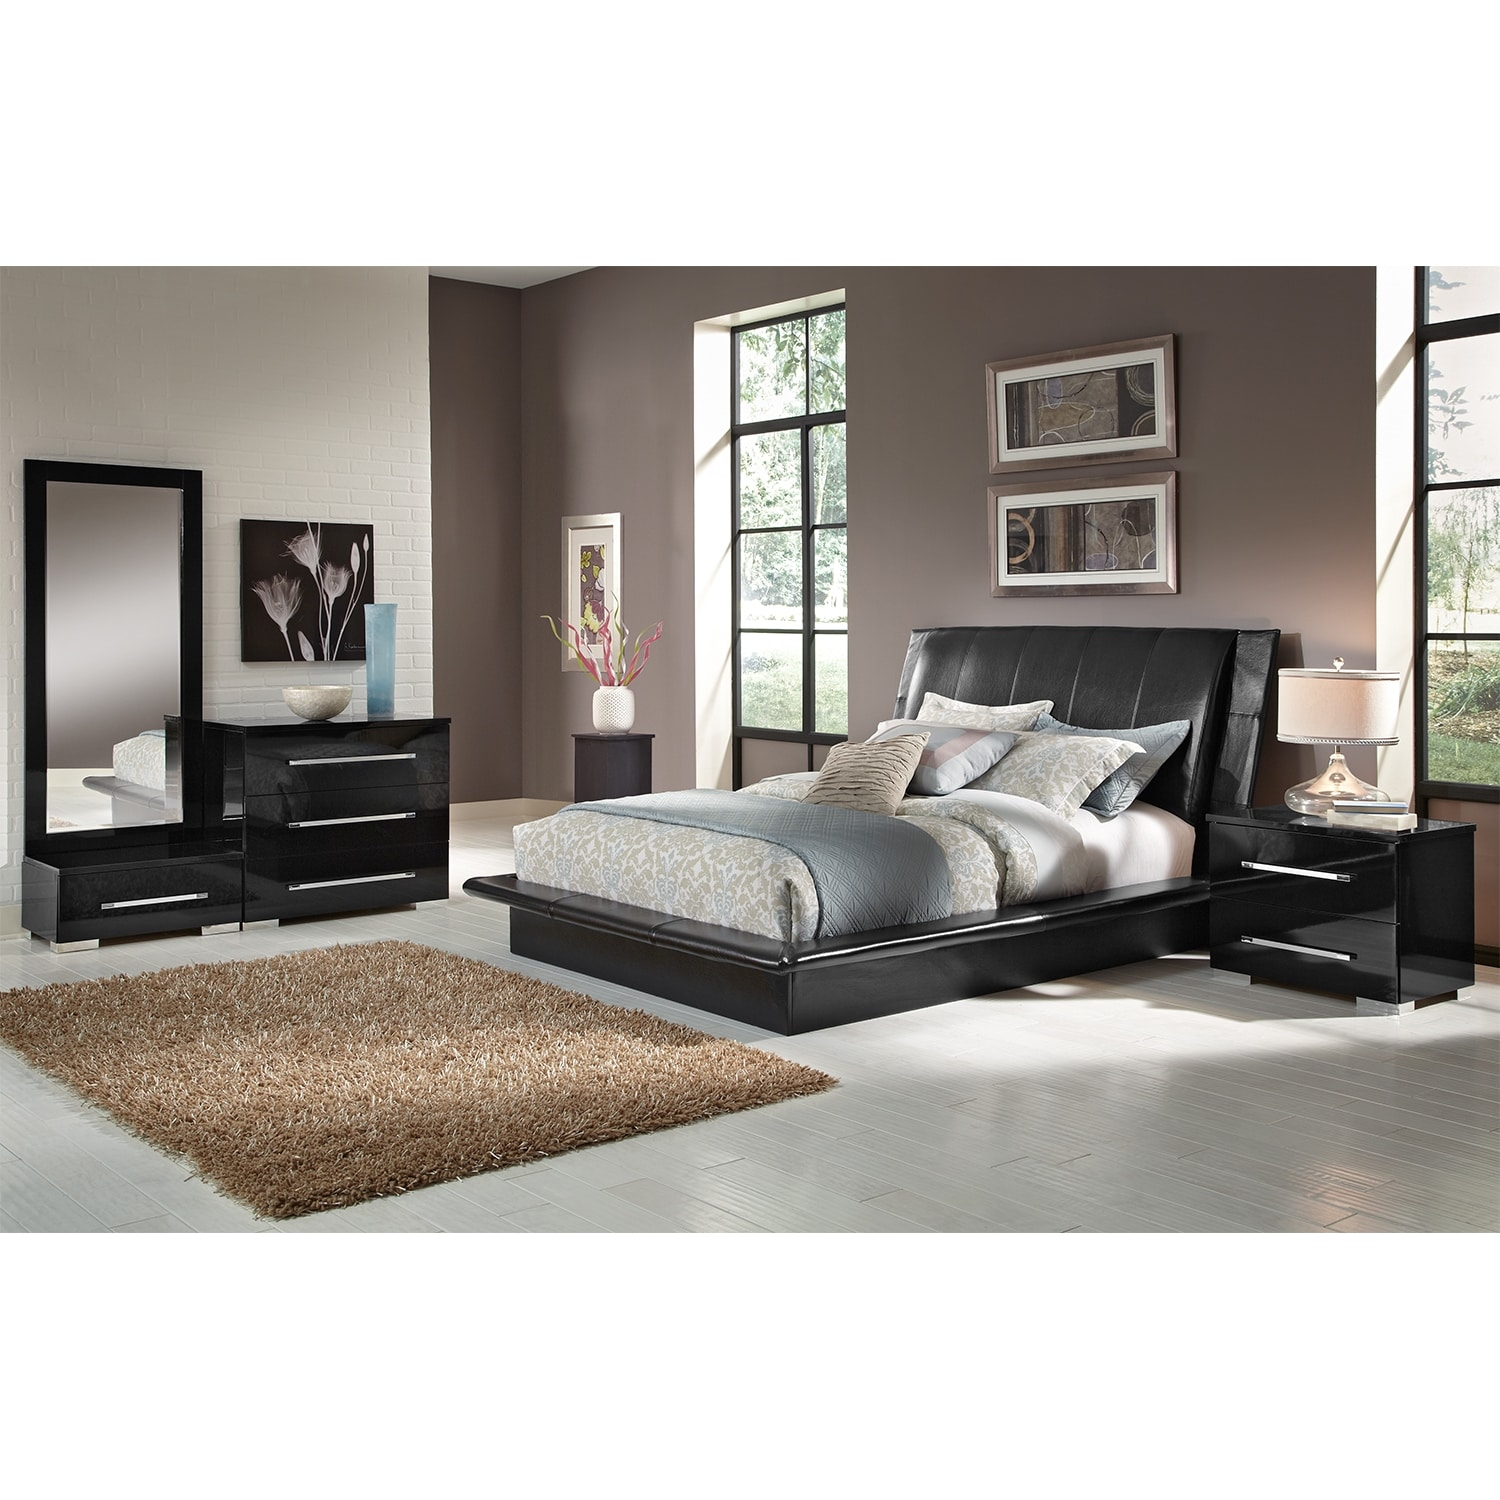 Dimora 6-Piece King Upholstered Bedroom Set - Black